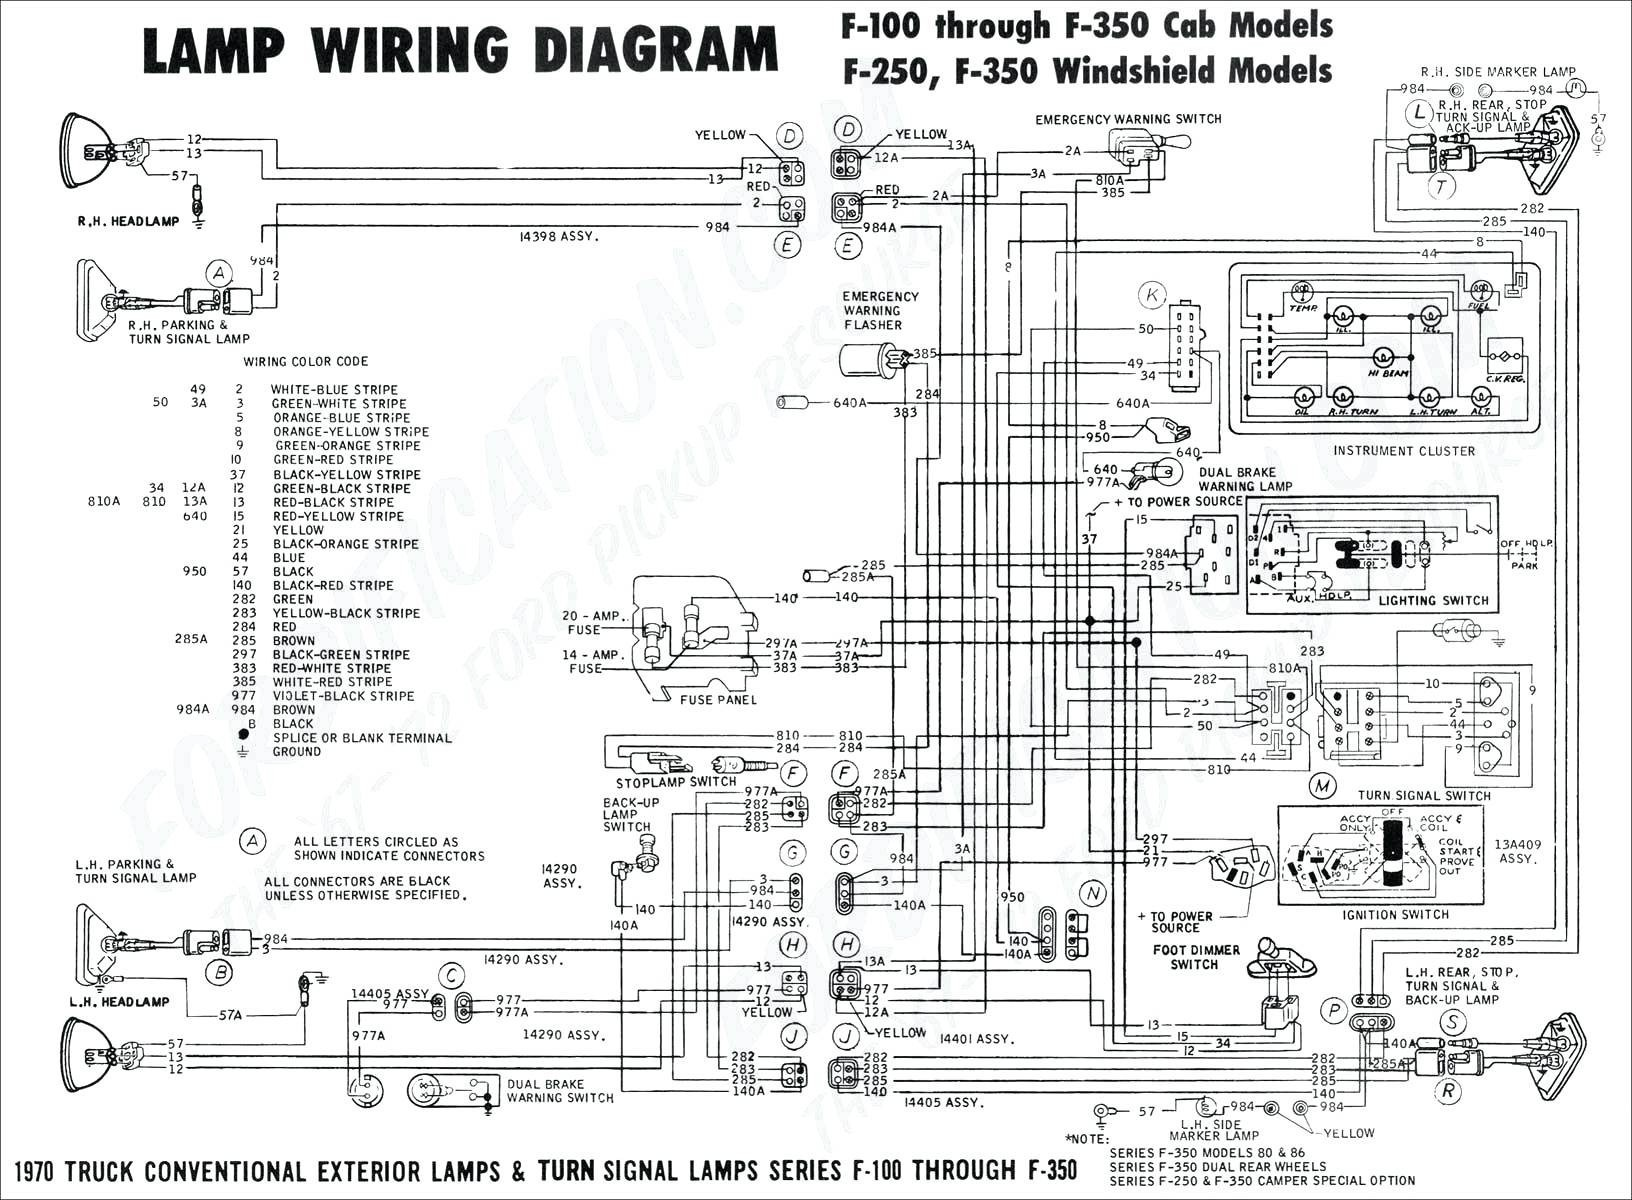 1998 ford expedition wiring diagrams aw 5583  98 expedition radio wire diagram  aw 5583  98 expedition radio wire diagram